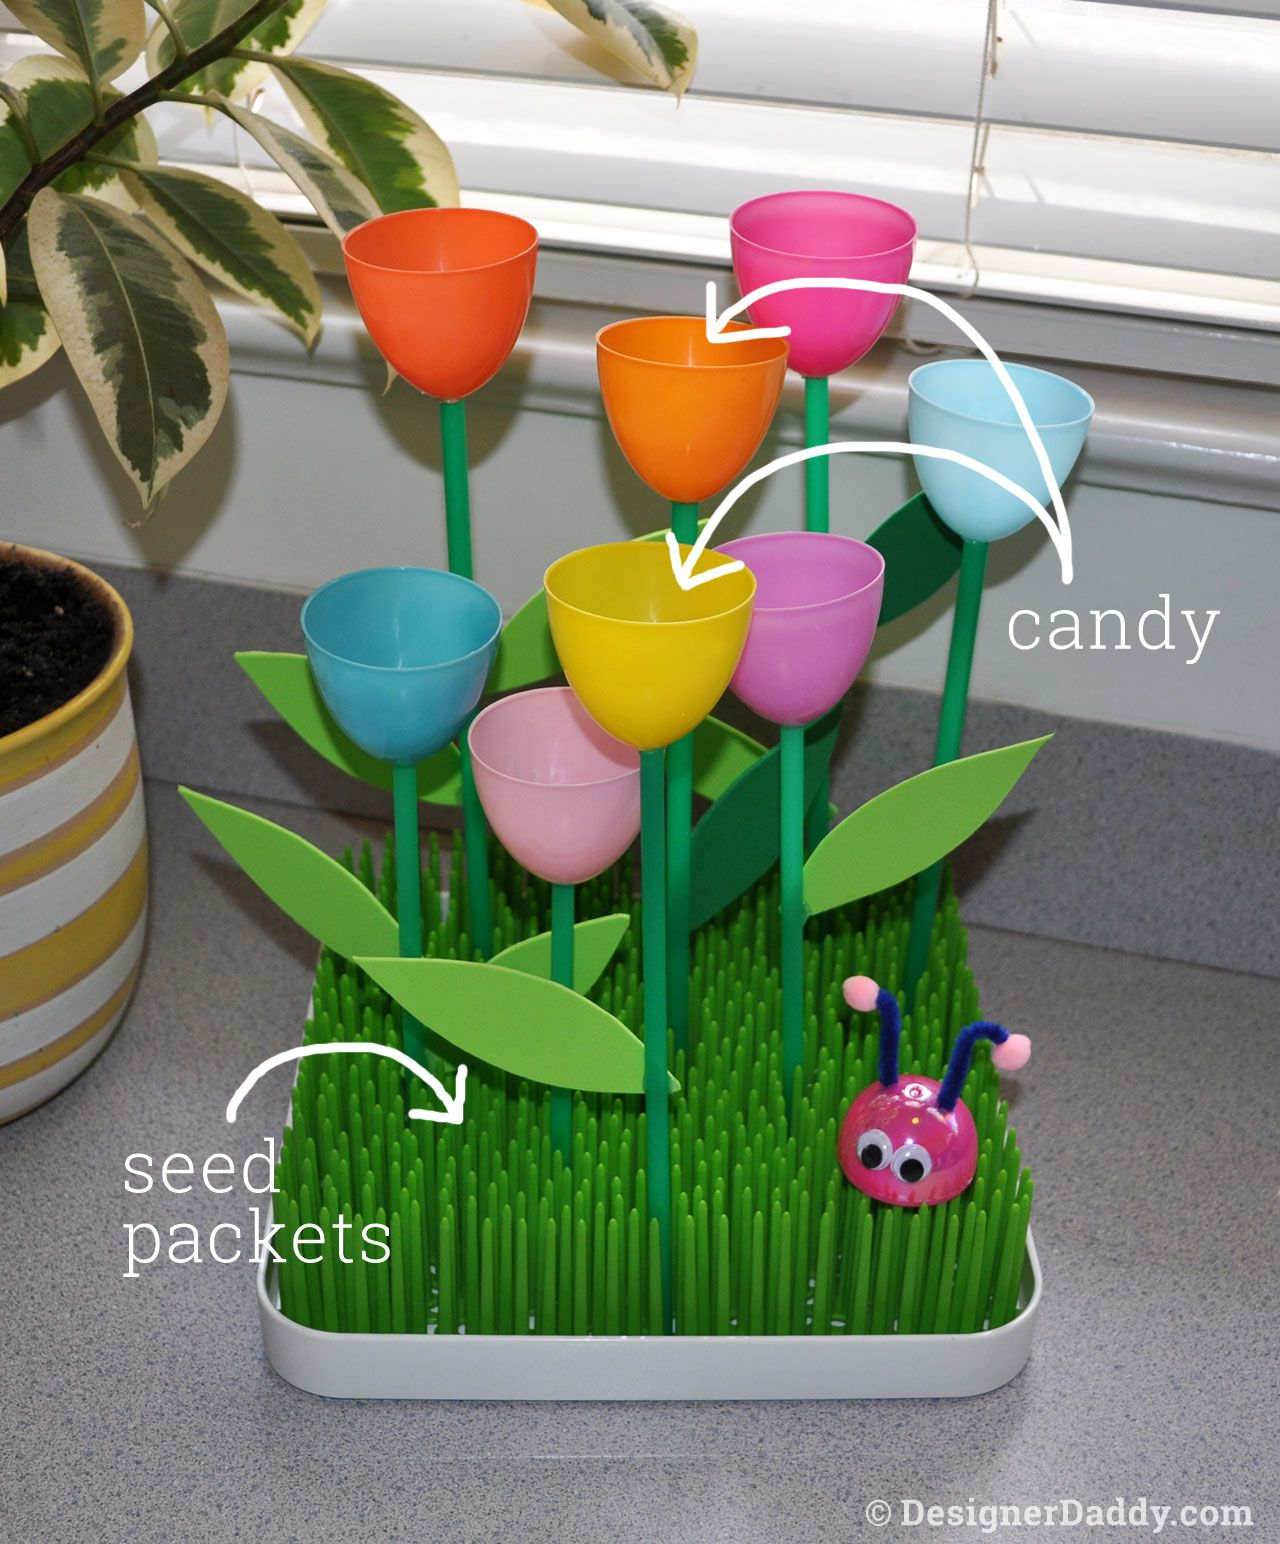 Mothers day crafts eggceptionally easy tulip garden mothers day crafts gift ideas super easy tulip garden made from plastic easter eggs negle Gallery